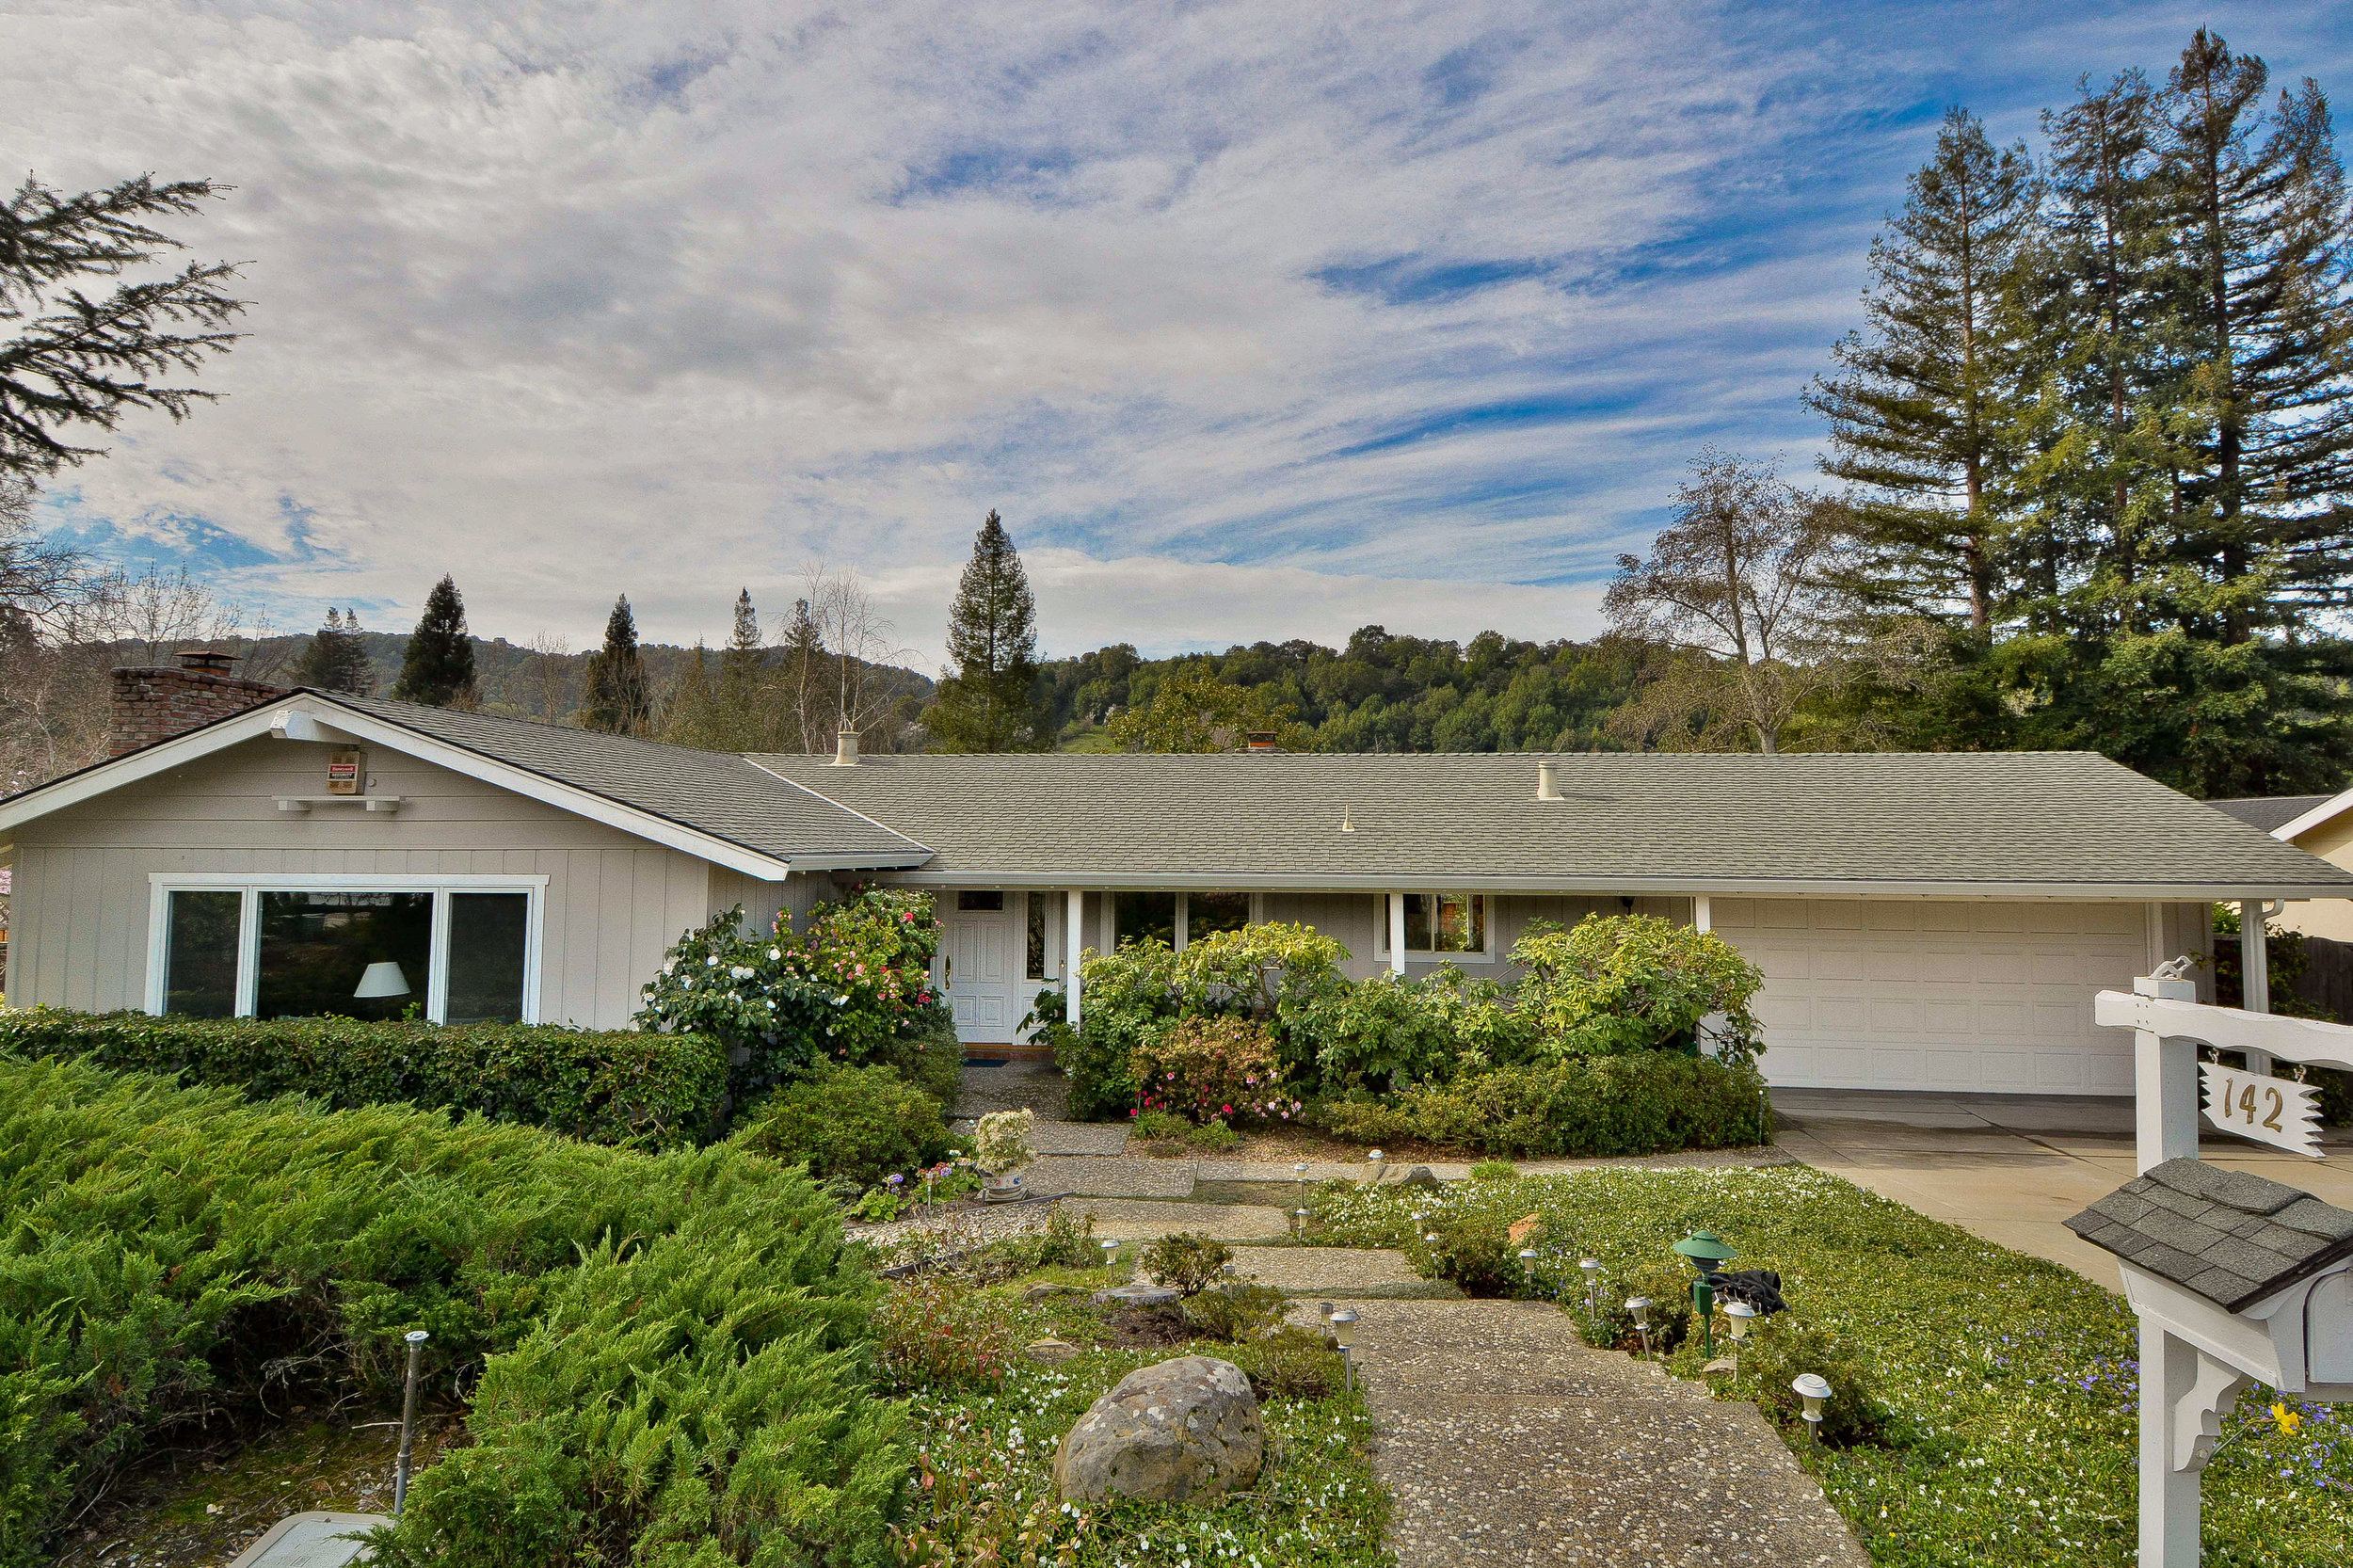 142 selborne way, moraga, ca  listed: $1,125,000 sold: $1,127,000 represented seller